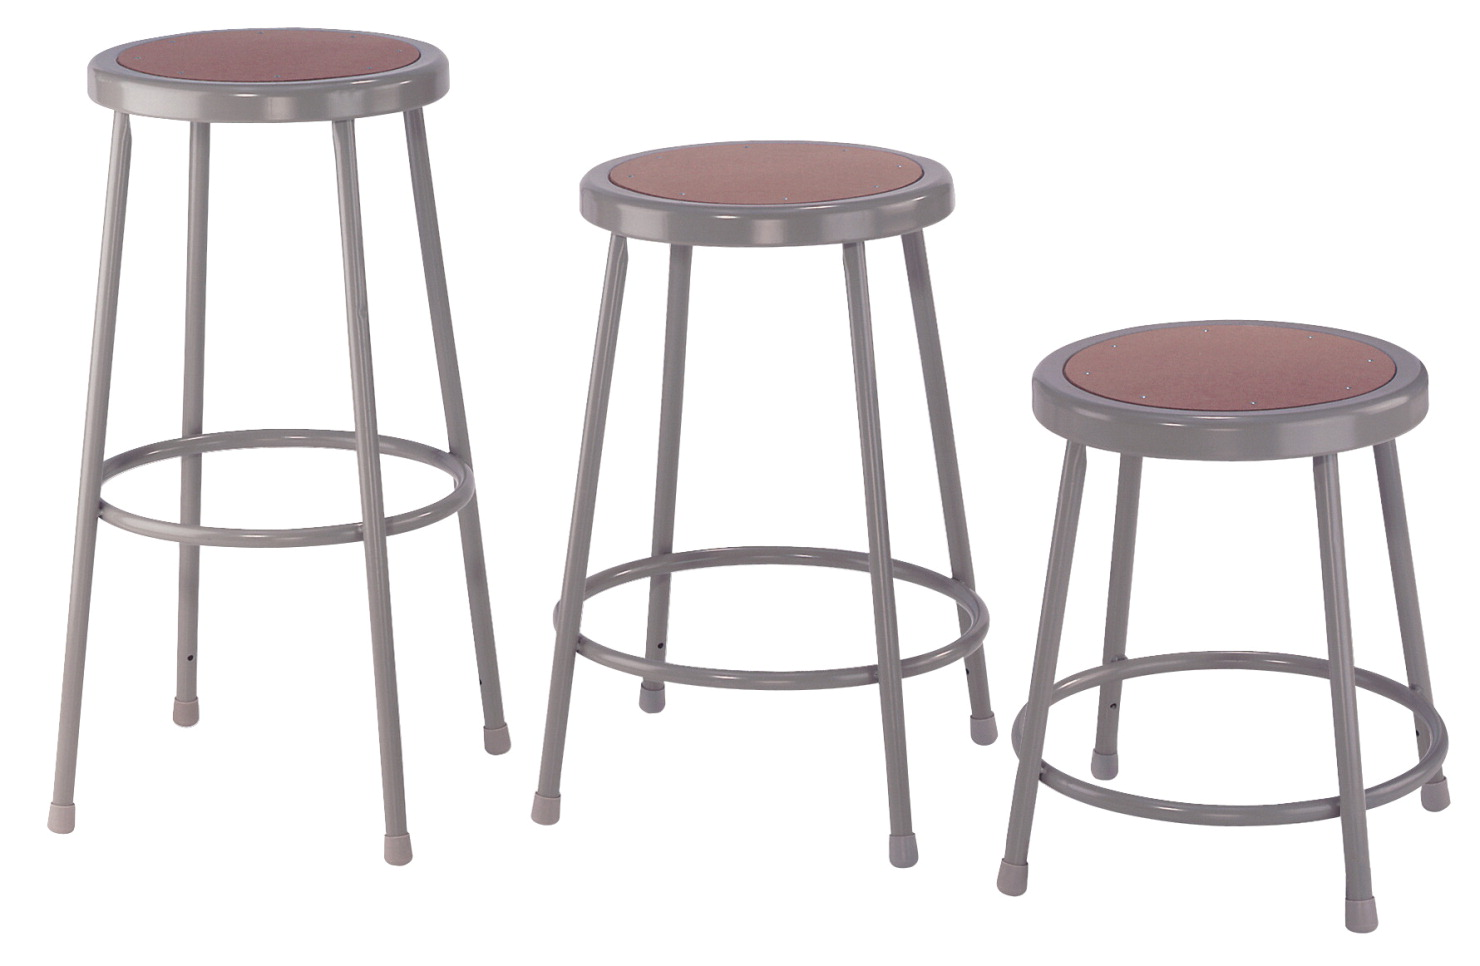 National Public Seating Heavy Duty Steel Stool, 18 Inch, Gray